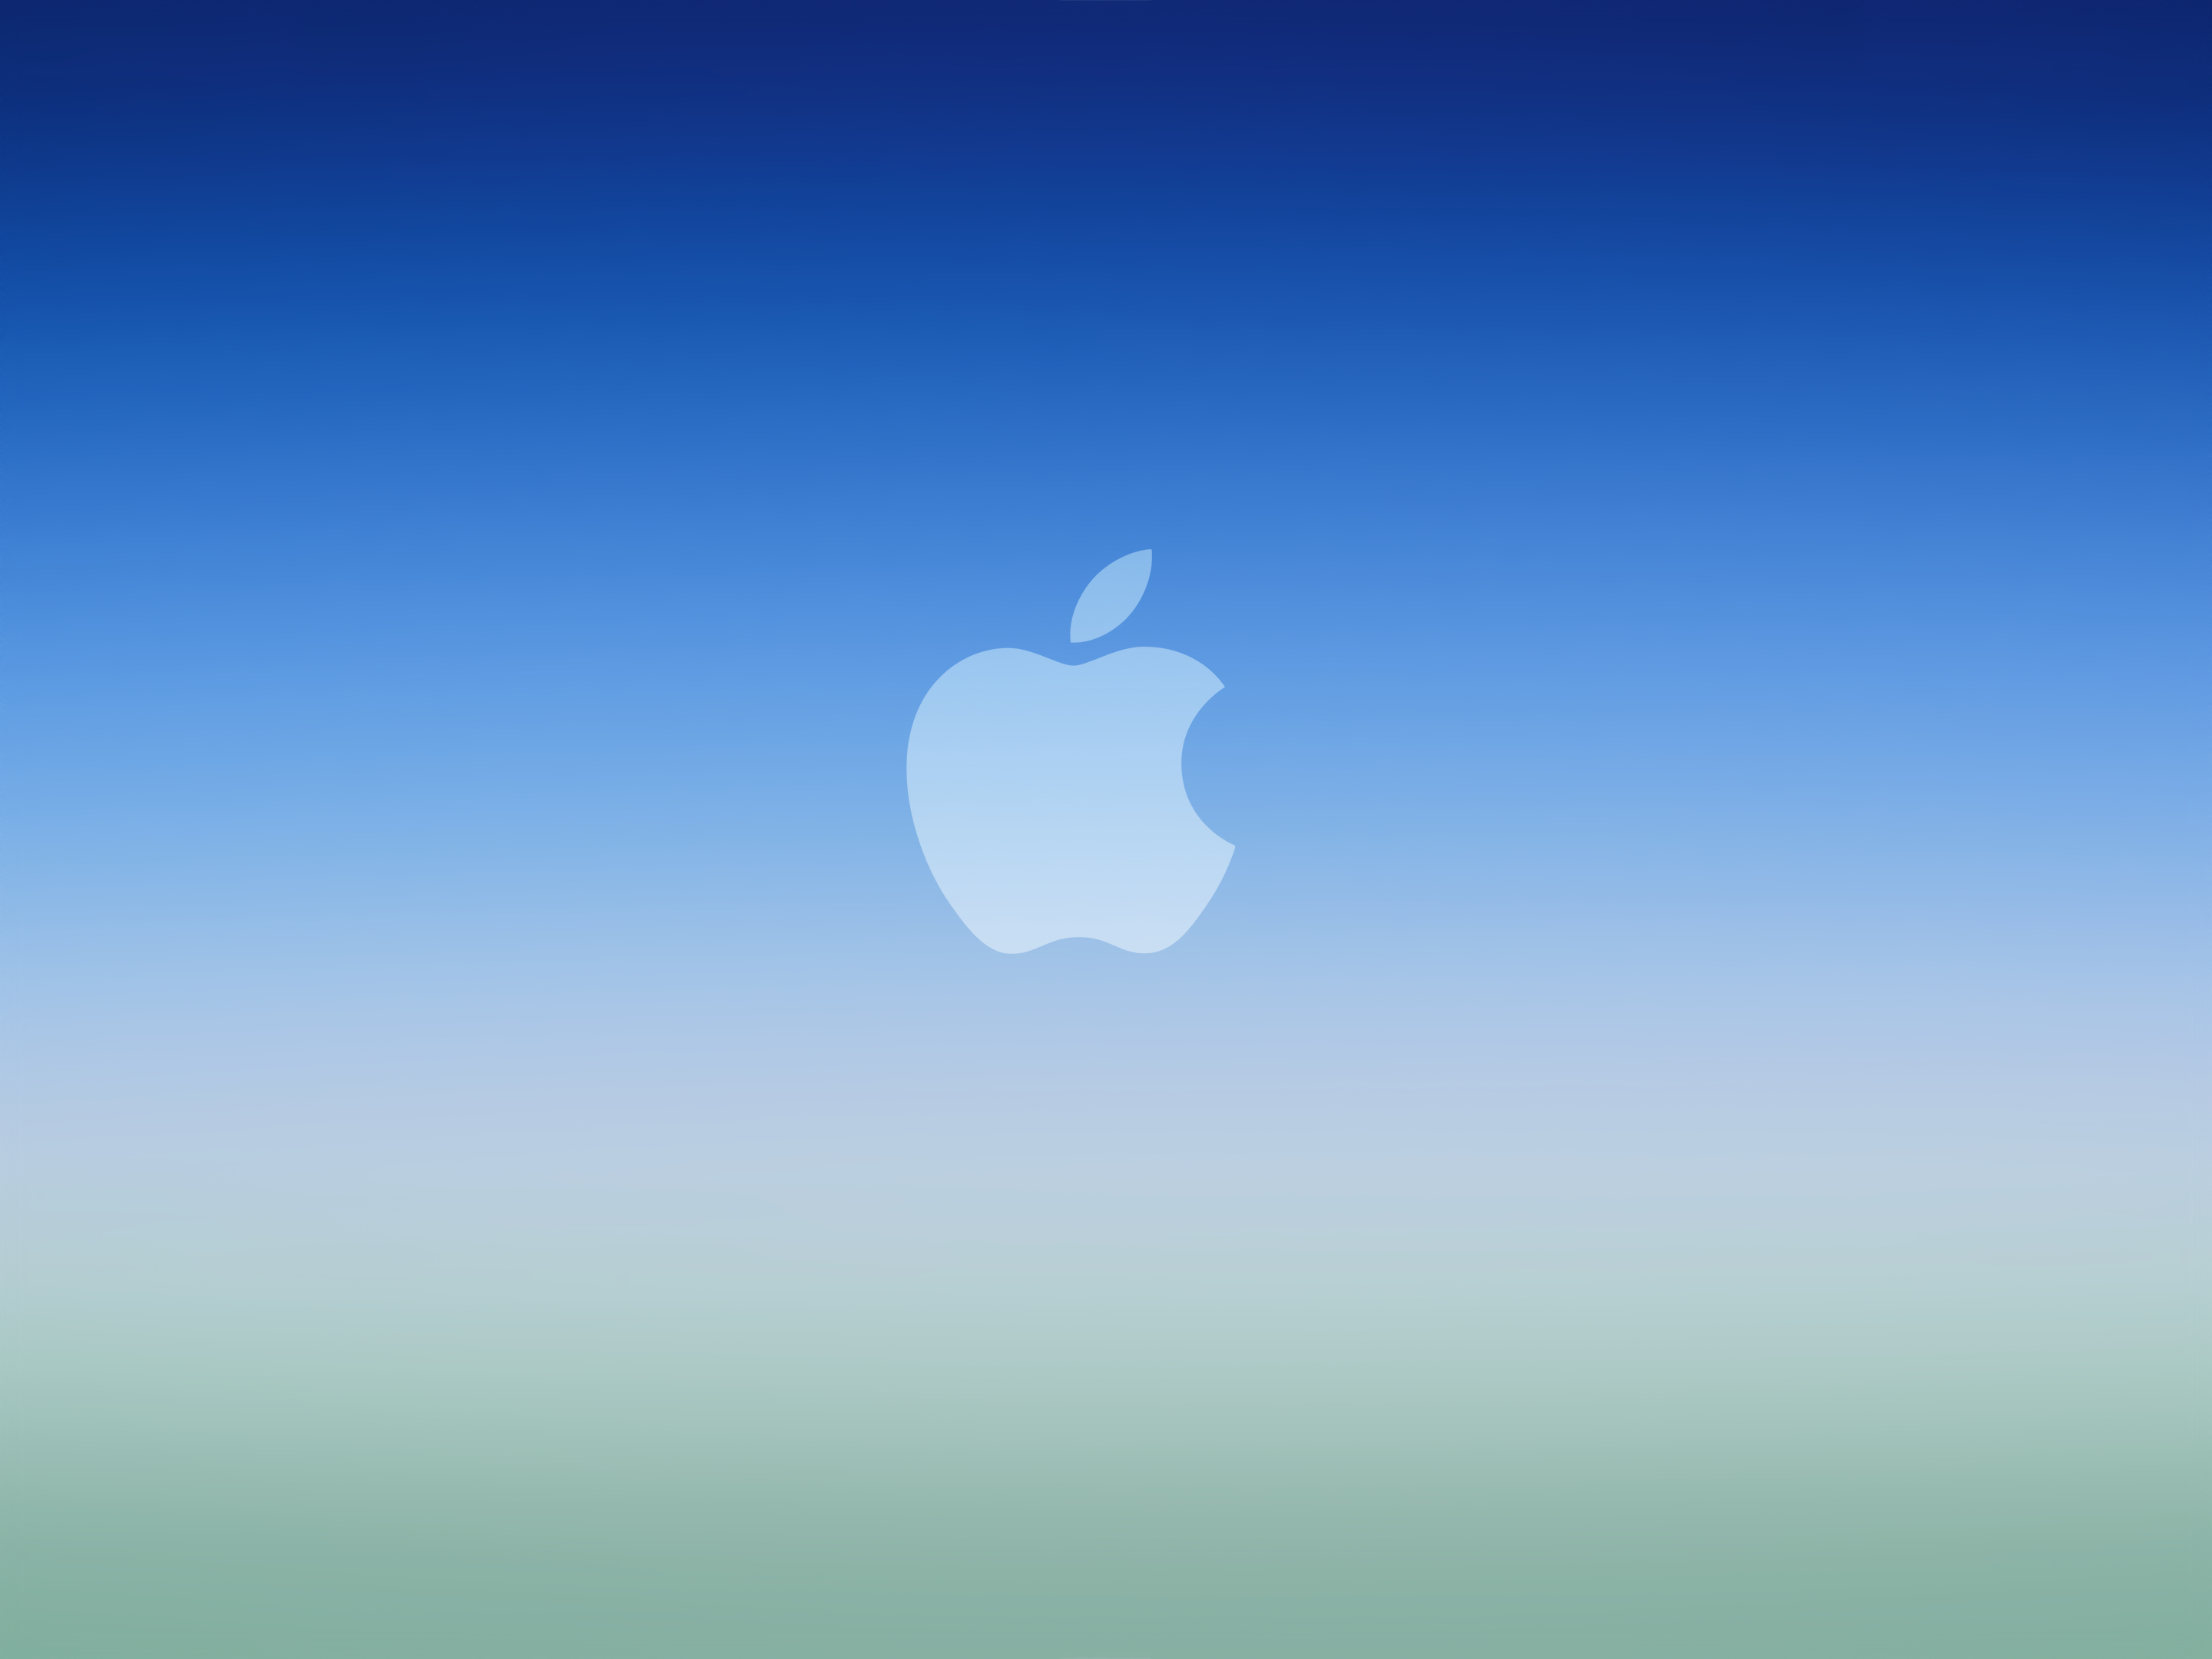 Apple Logo Hd Wallpapers For Iphone 1920 1080 Apple Logo: IOS Version 1.7.1 Is Here